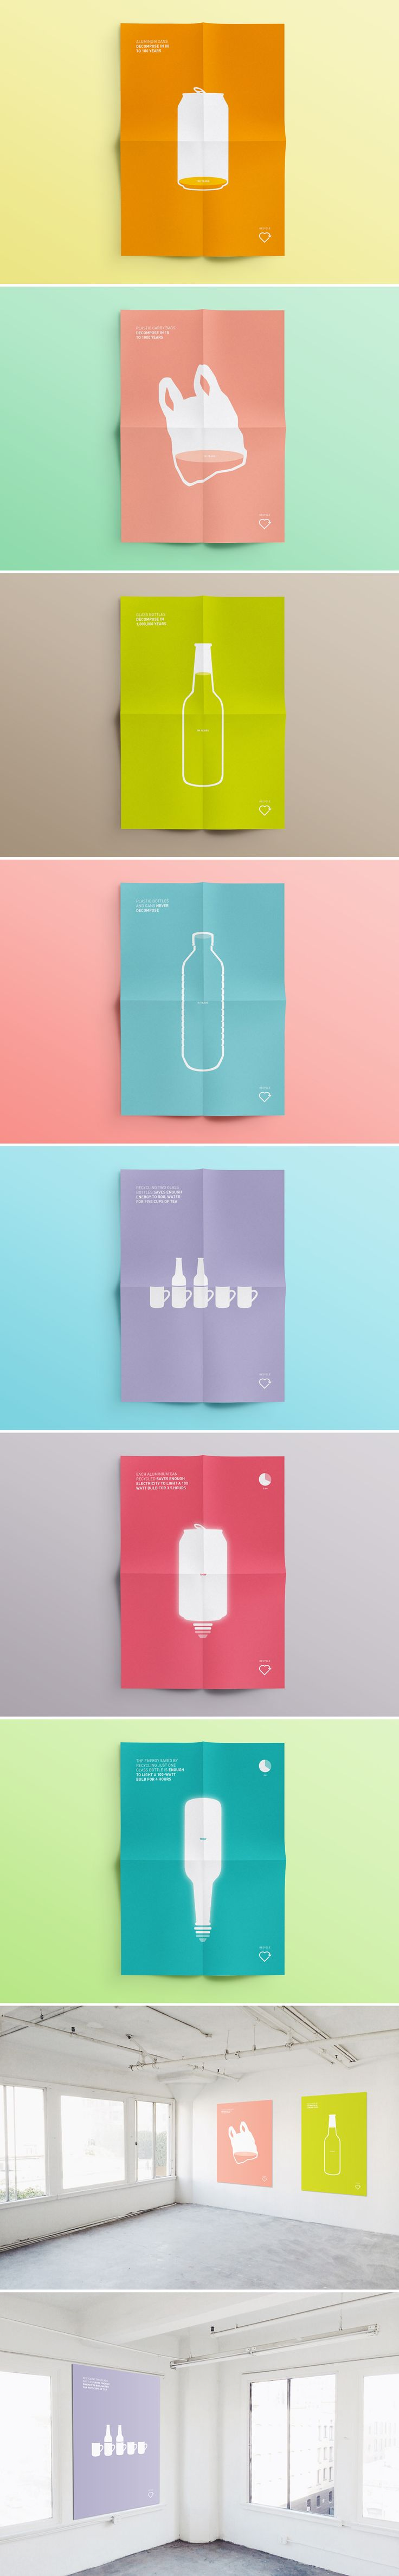 Recycling Posters by Sarita Walsh